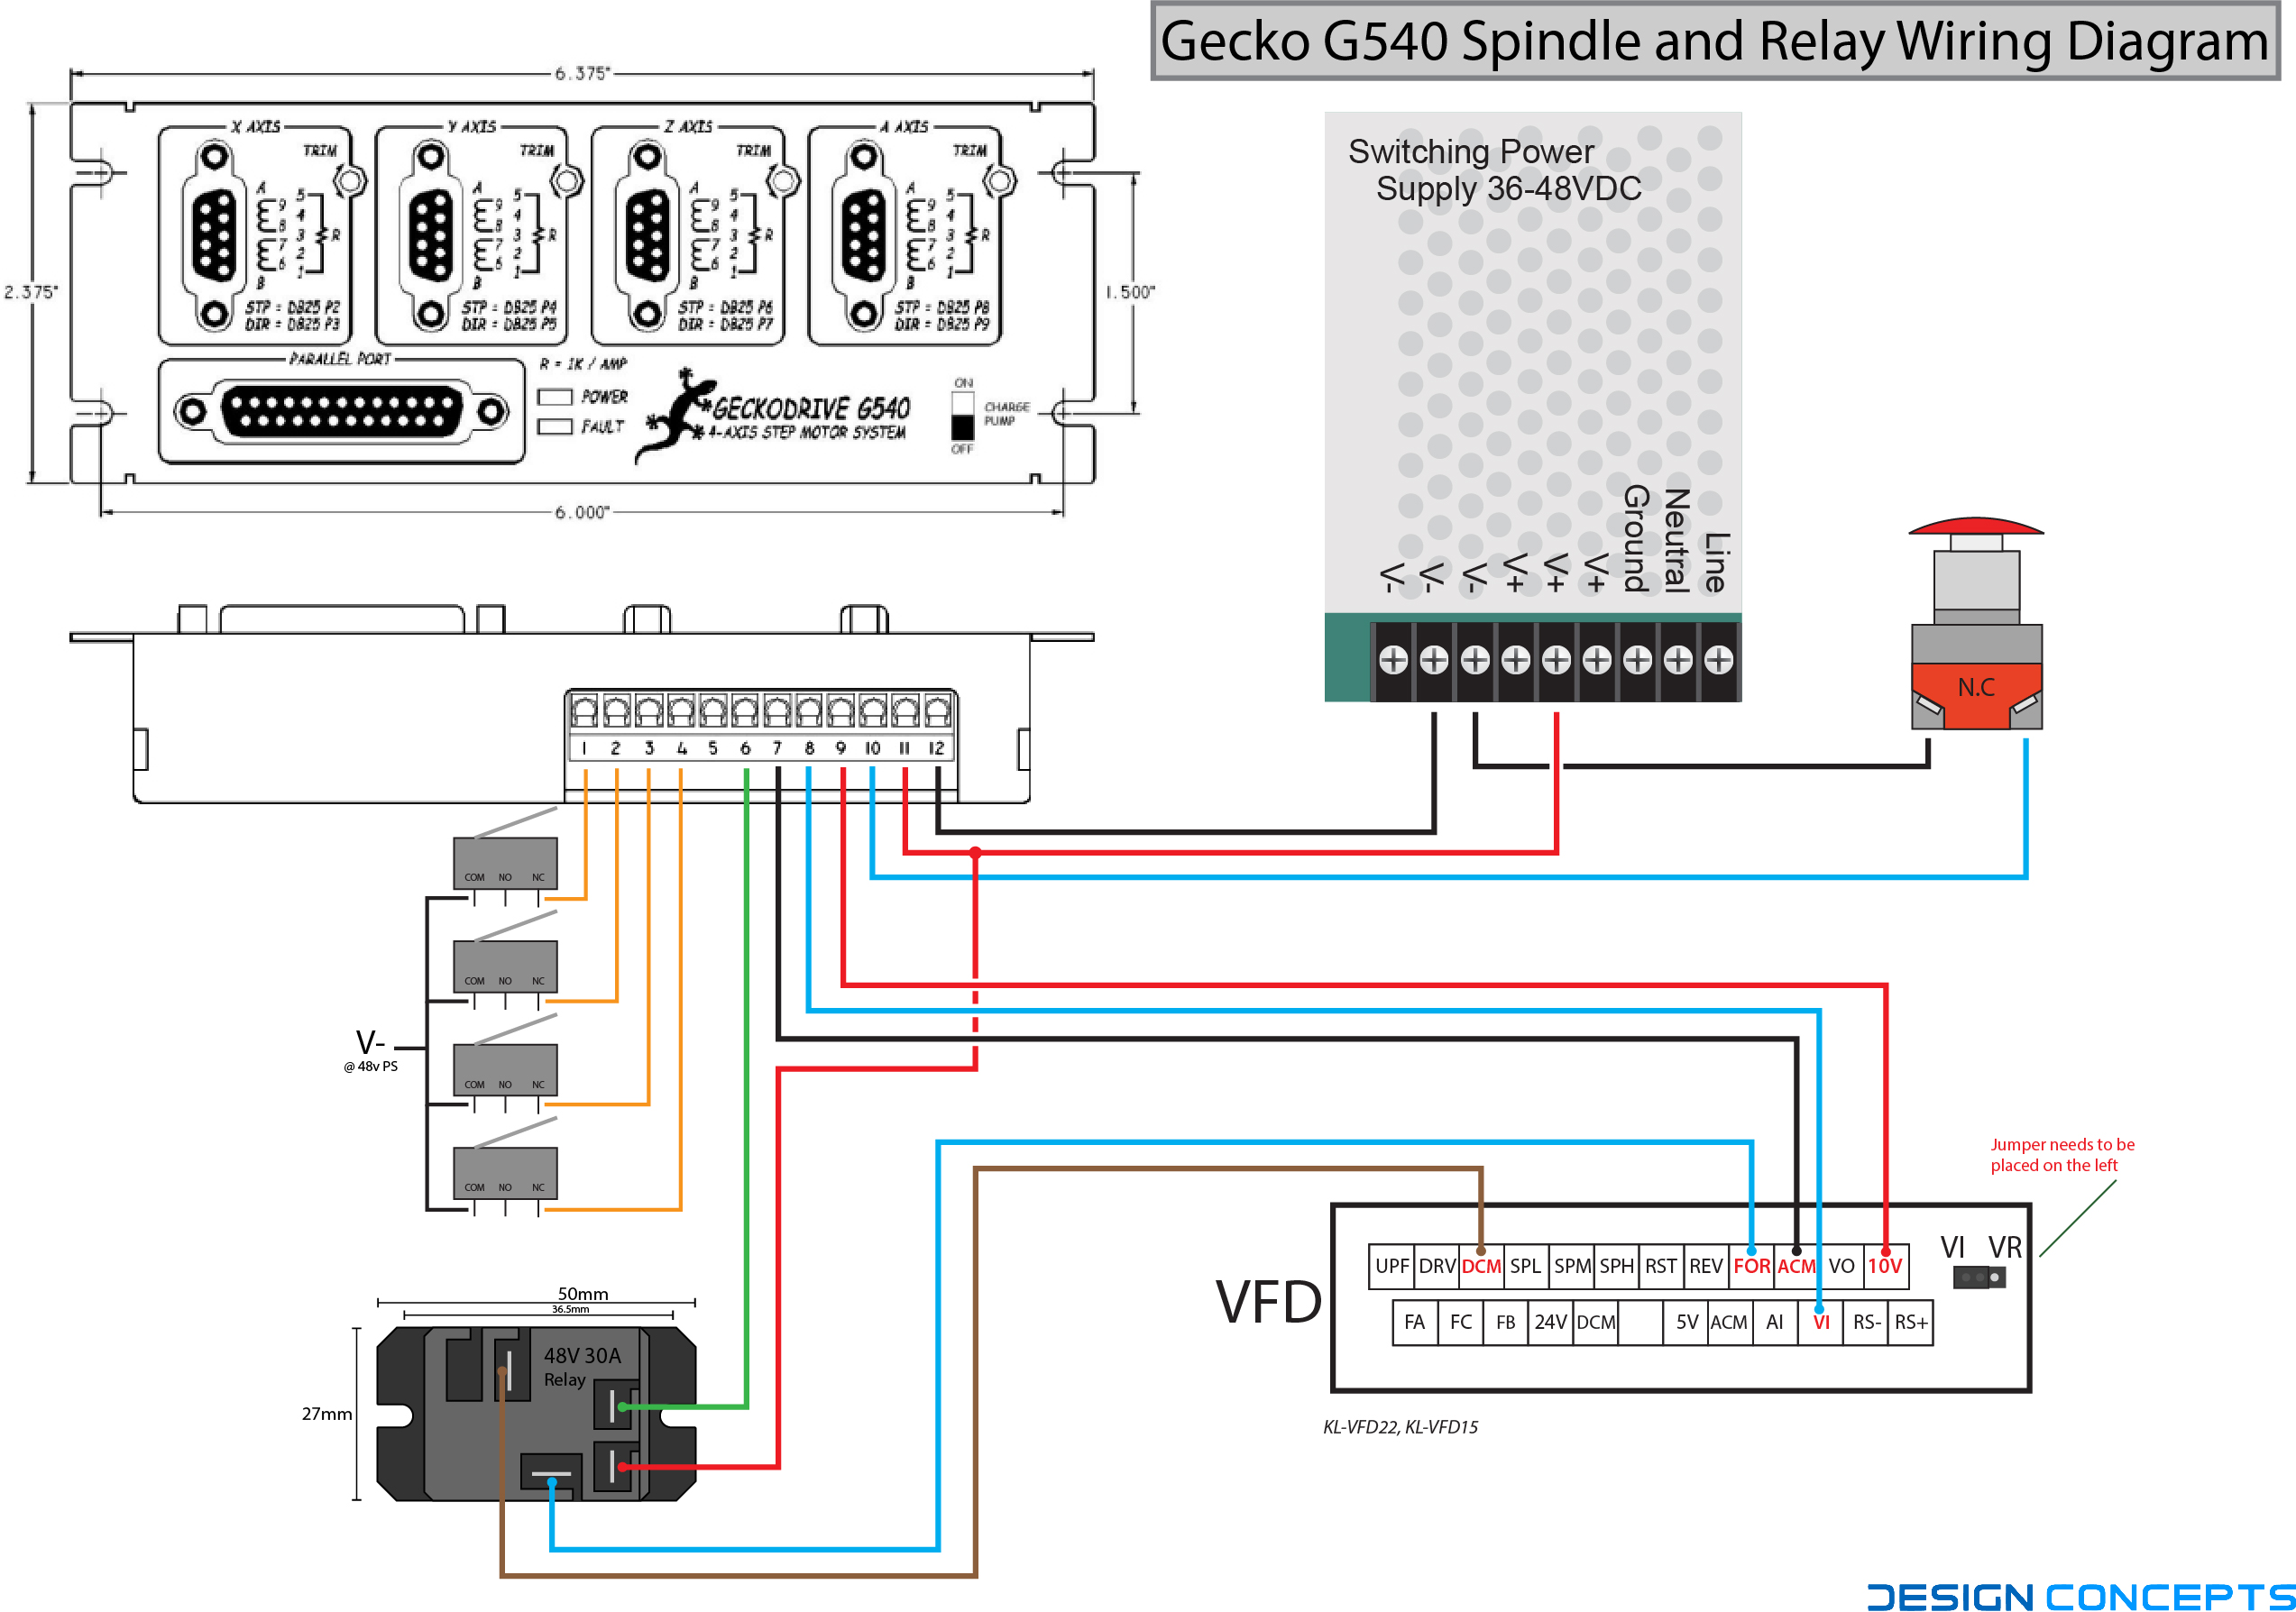 gecko g540 relay wiring diagram block and schematic diagrams u2022 ge oven wiring schematic kenmore 116 51612002 wiring diagram [ 2546 x 1788 Pixel ]